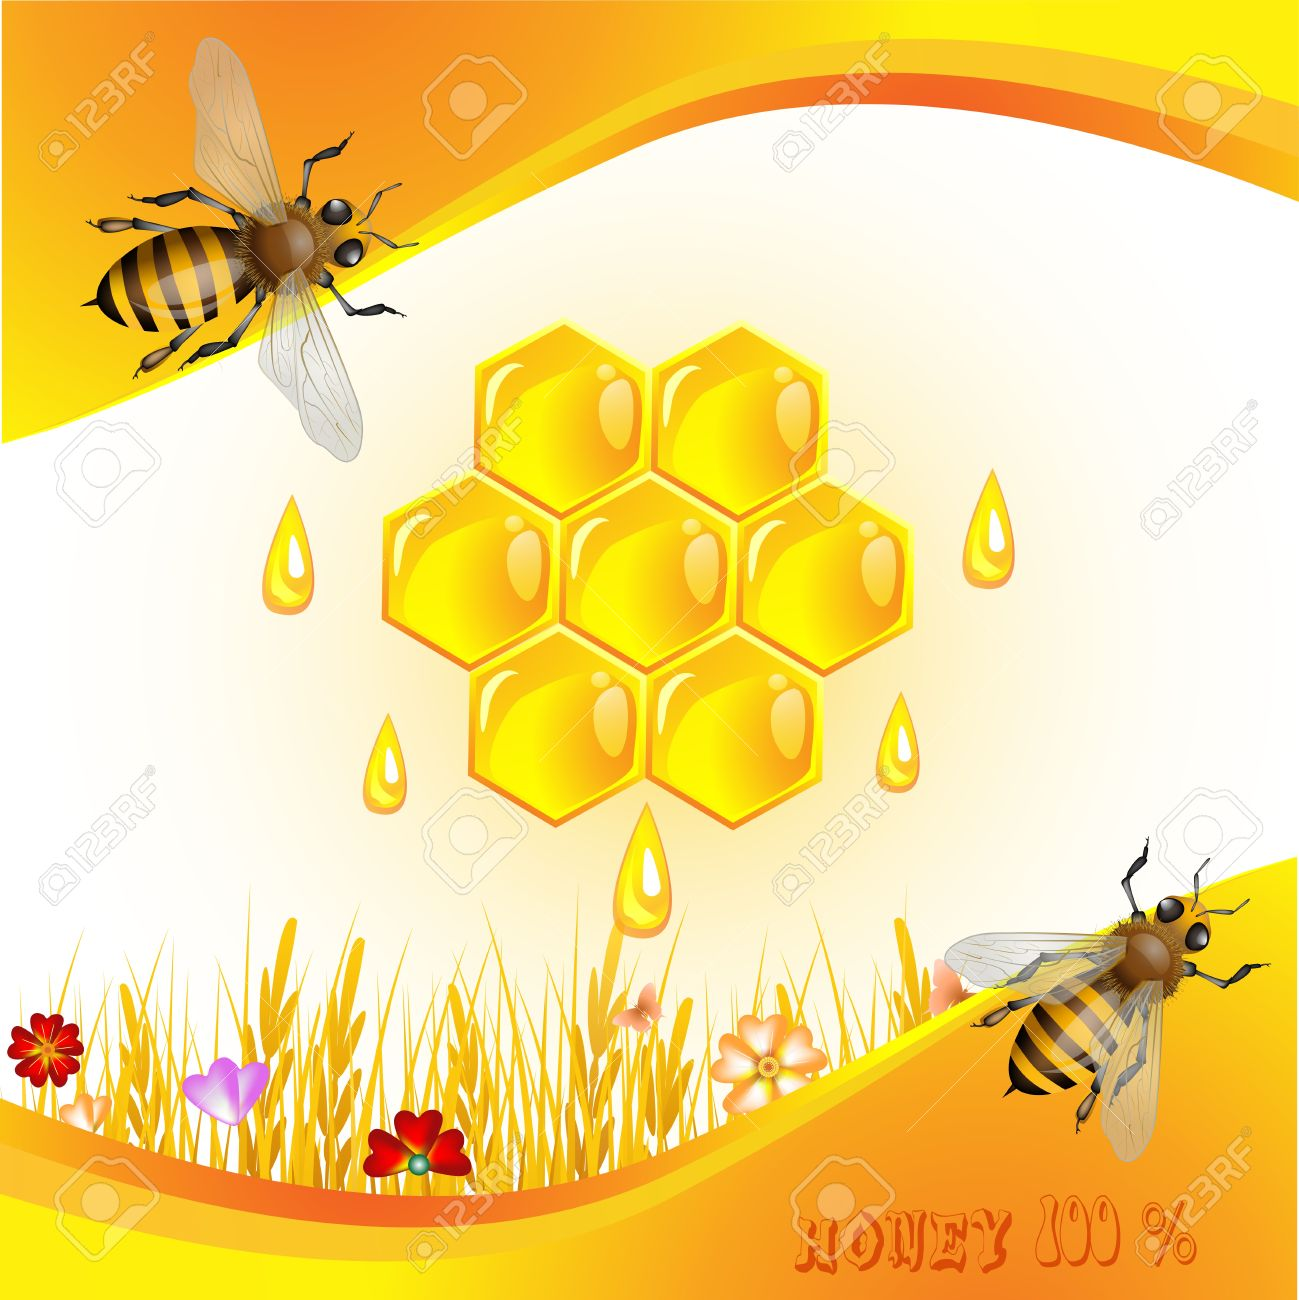 honeycomb images u0026 stock pictures royalty free honeycomb photos